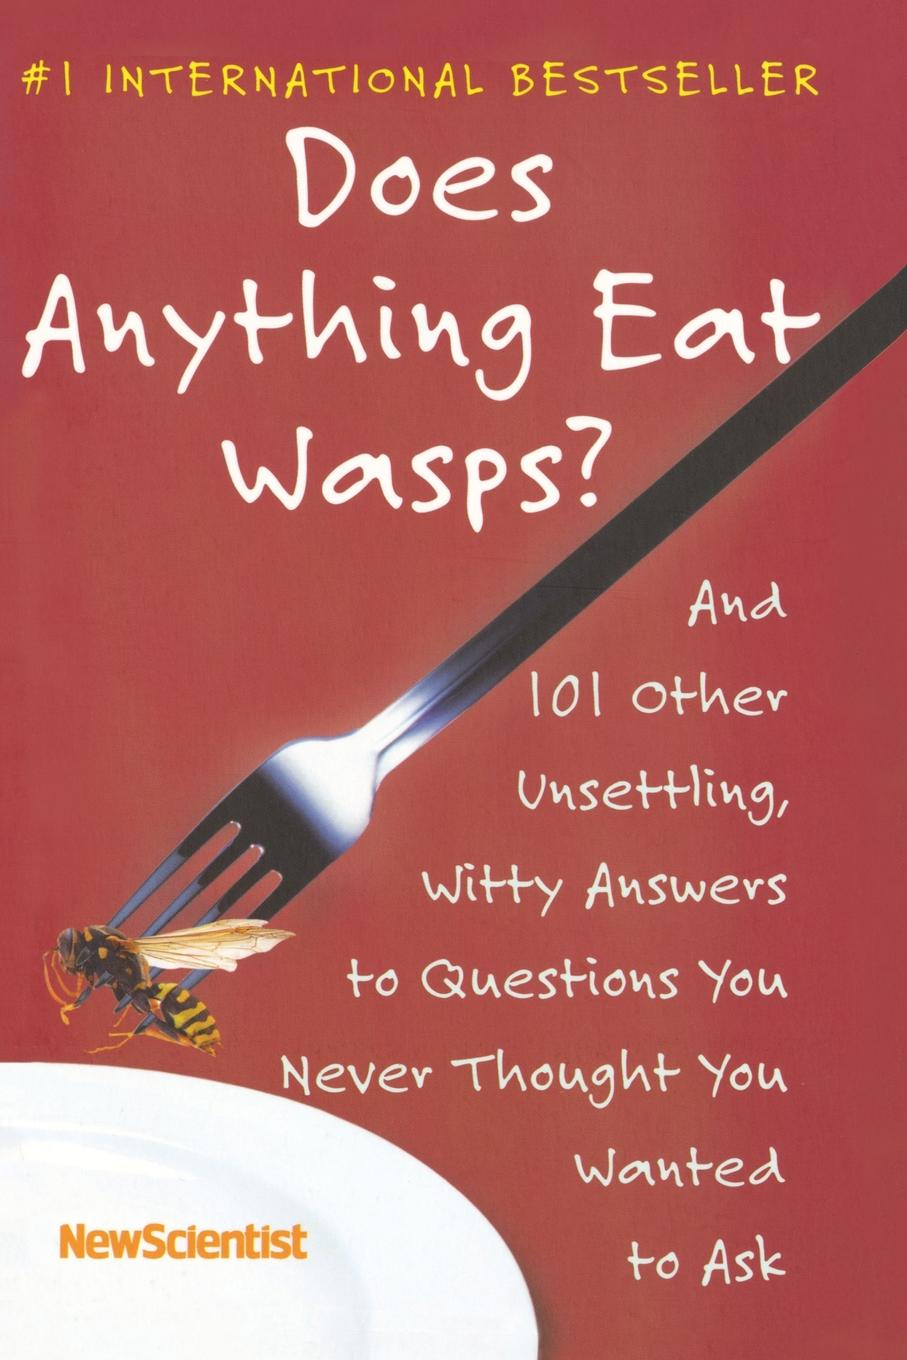 Does Anything Eat Wasps?. And 101 Other Unsettling, Witty Answers to Questions You Never Thought You Wanted to Ask plumbing questions and answers pdf